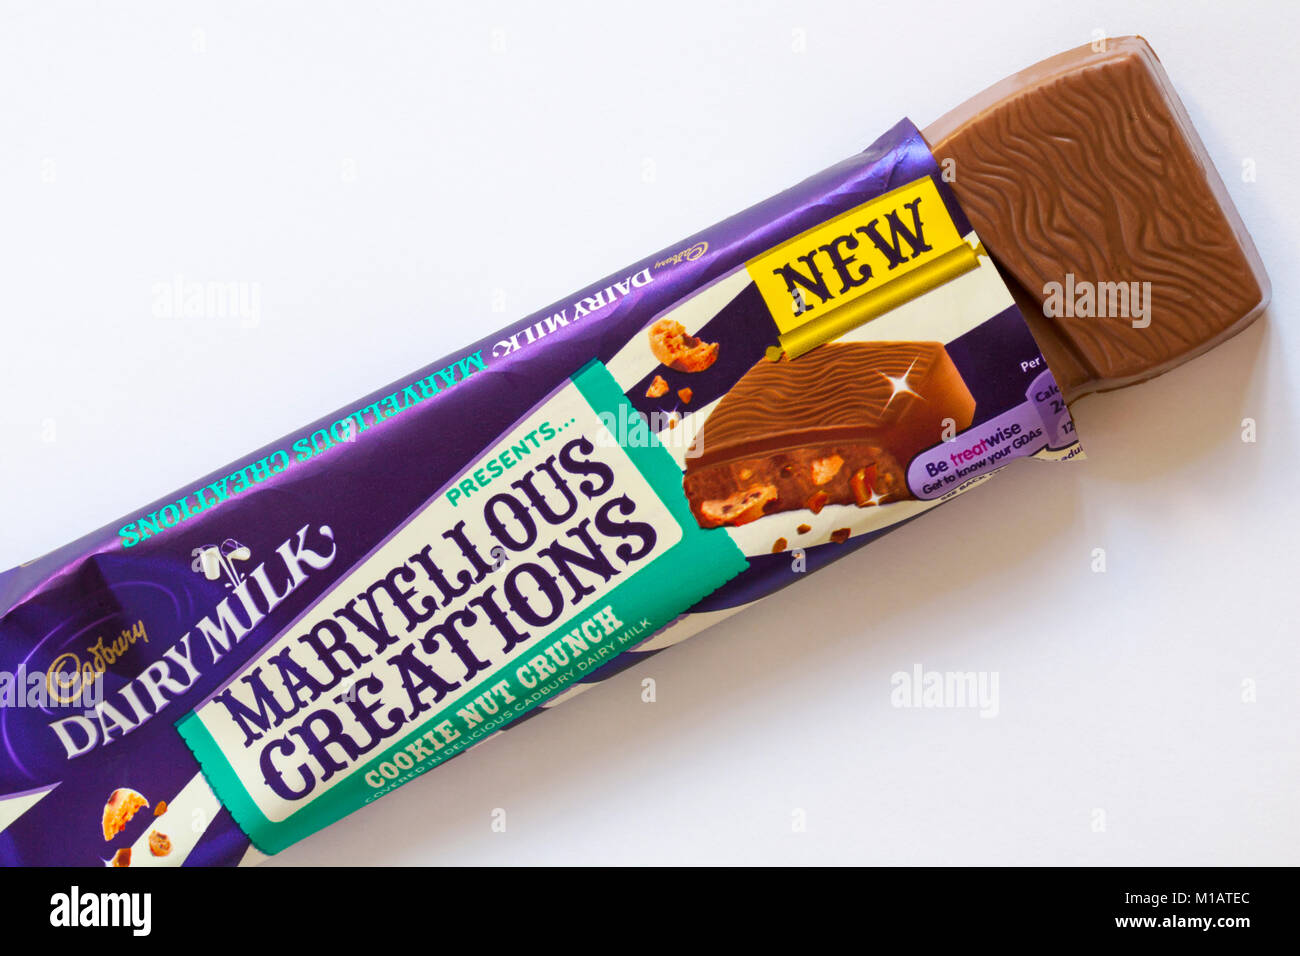 Cadbury Dairy Milk presents Marvellous Creations - cookie nut crunch opened to show contents set on white background - Stock Image